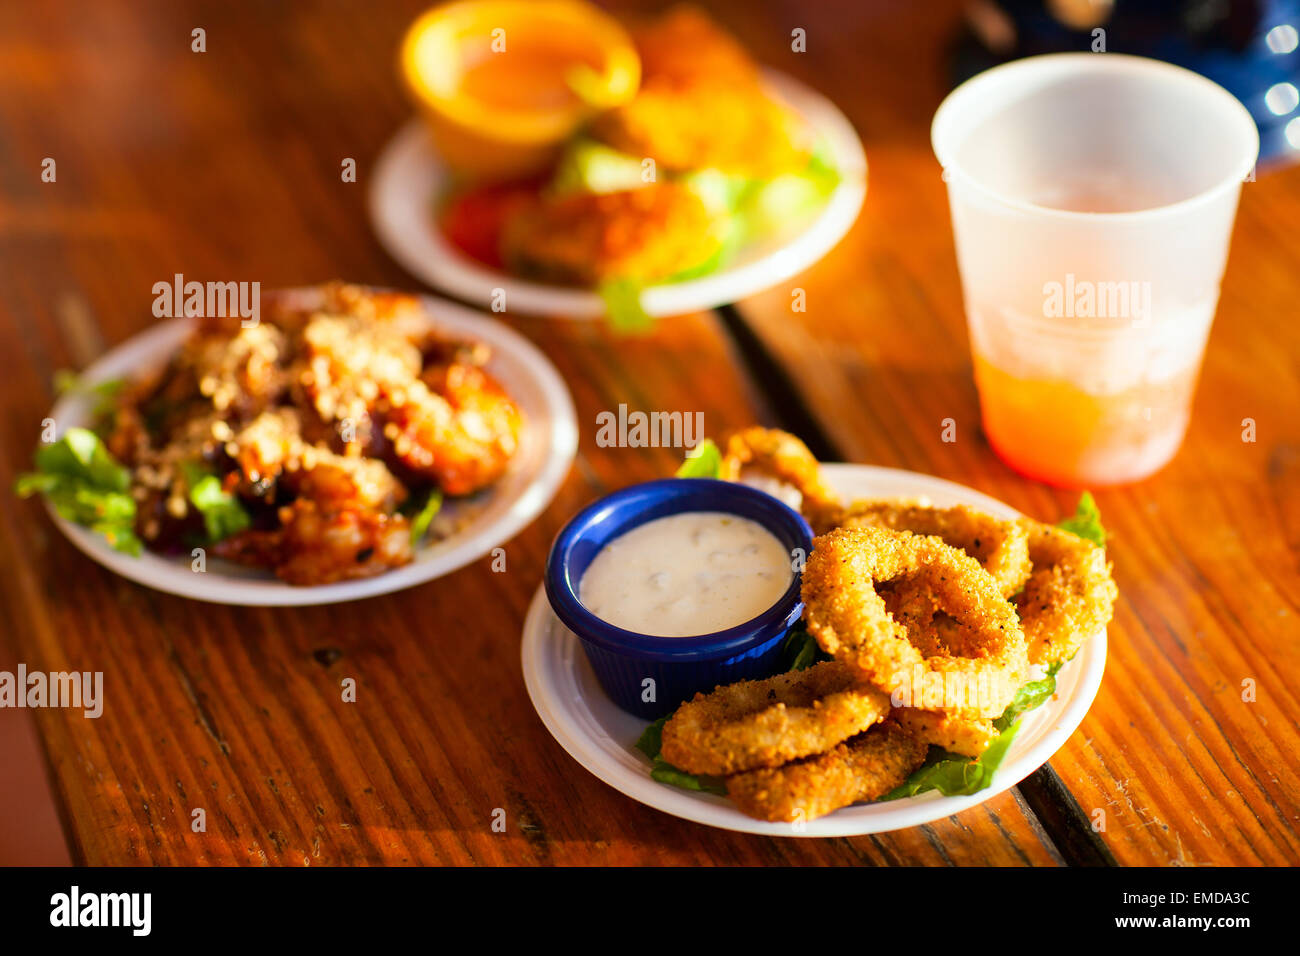 Different kinds of snacks   Lunch snacks - Stock Image